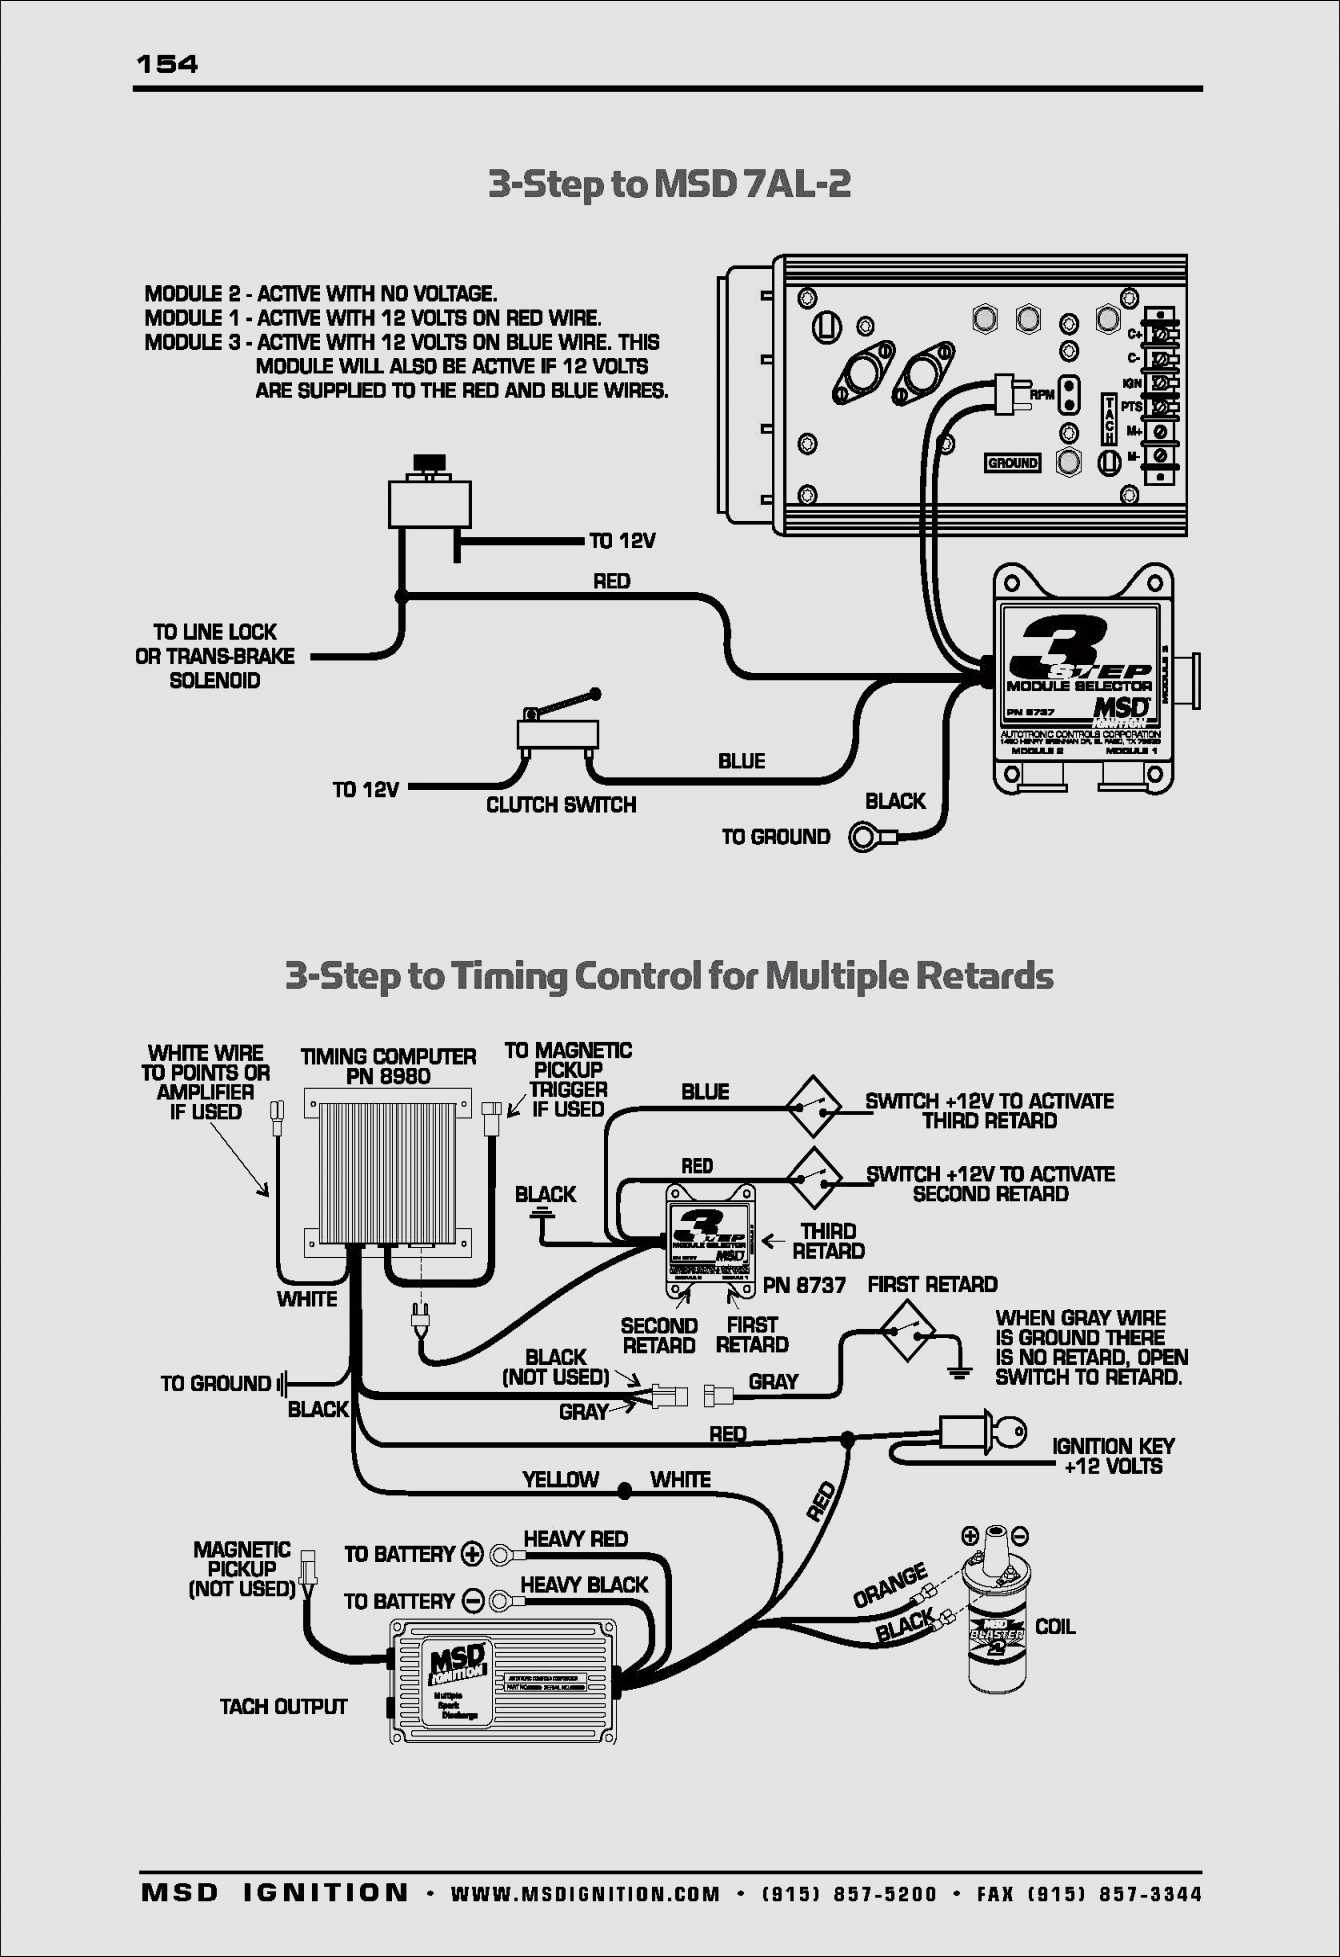 Wiring Diagram Additionally Wiring Diagram Furthermore Gould Century - Gould Century Motor Wiring Diagram